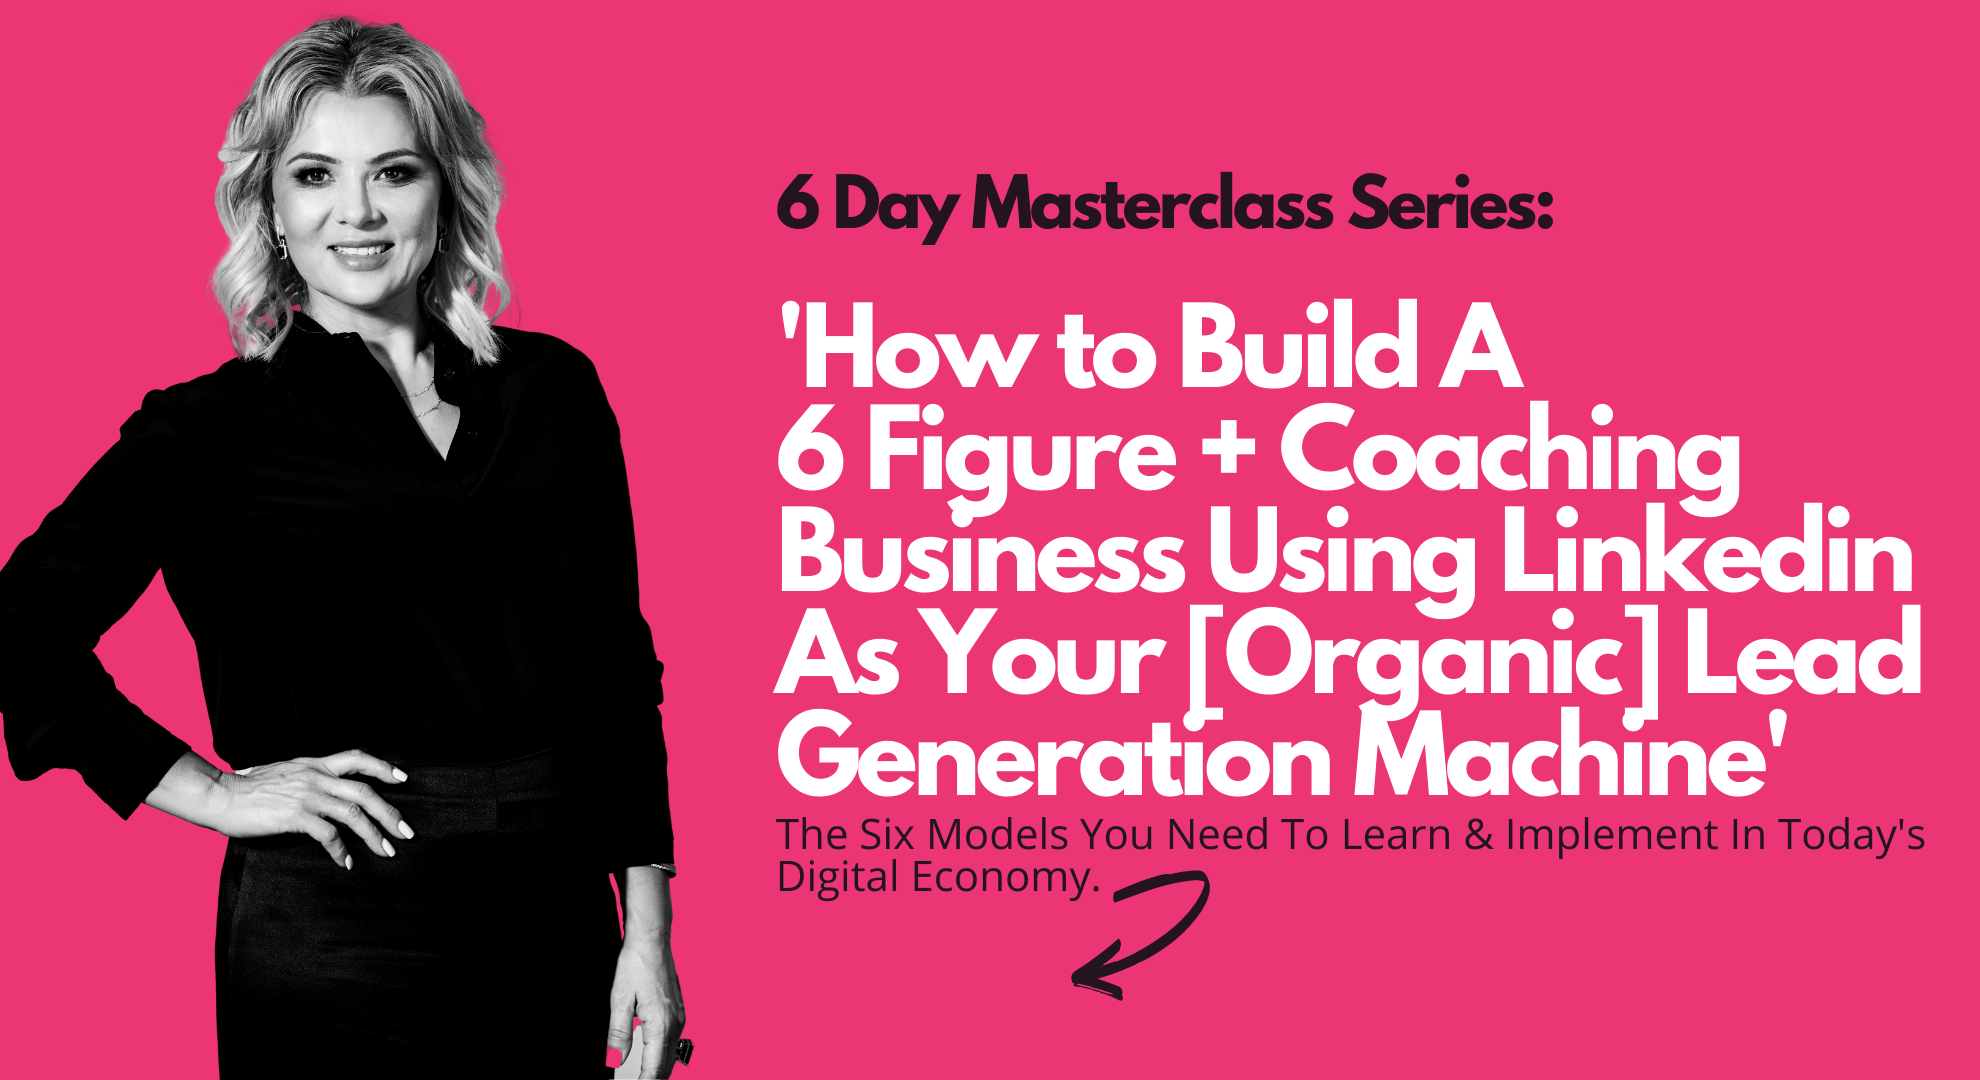 how to build a 6 figure +coaching business using linked as your [organic\ Lead generation machine?